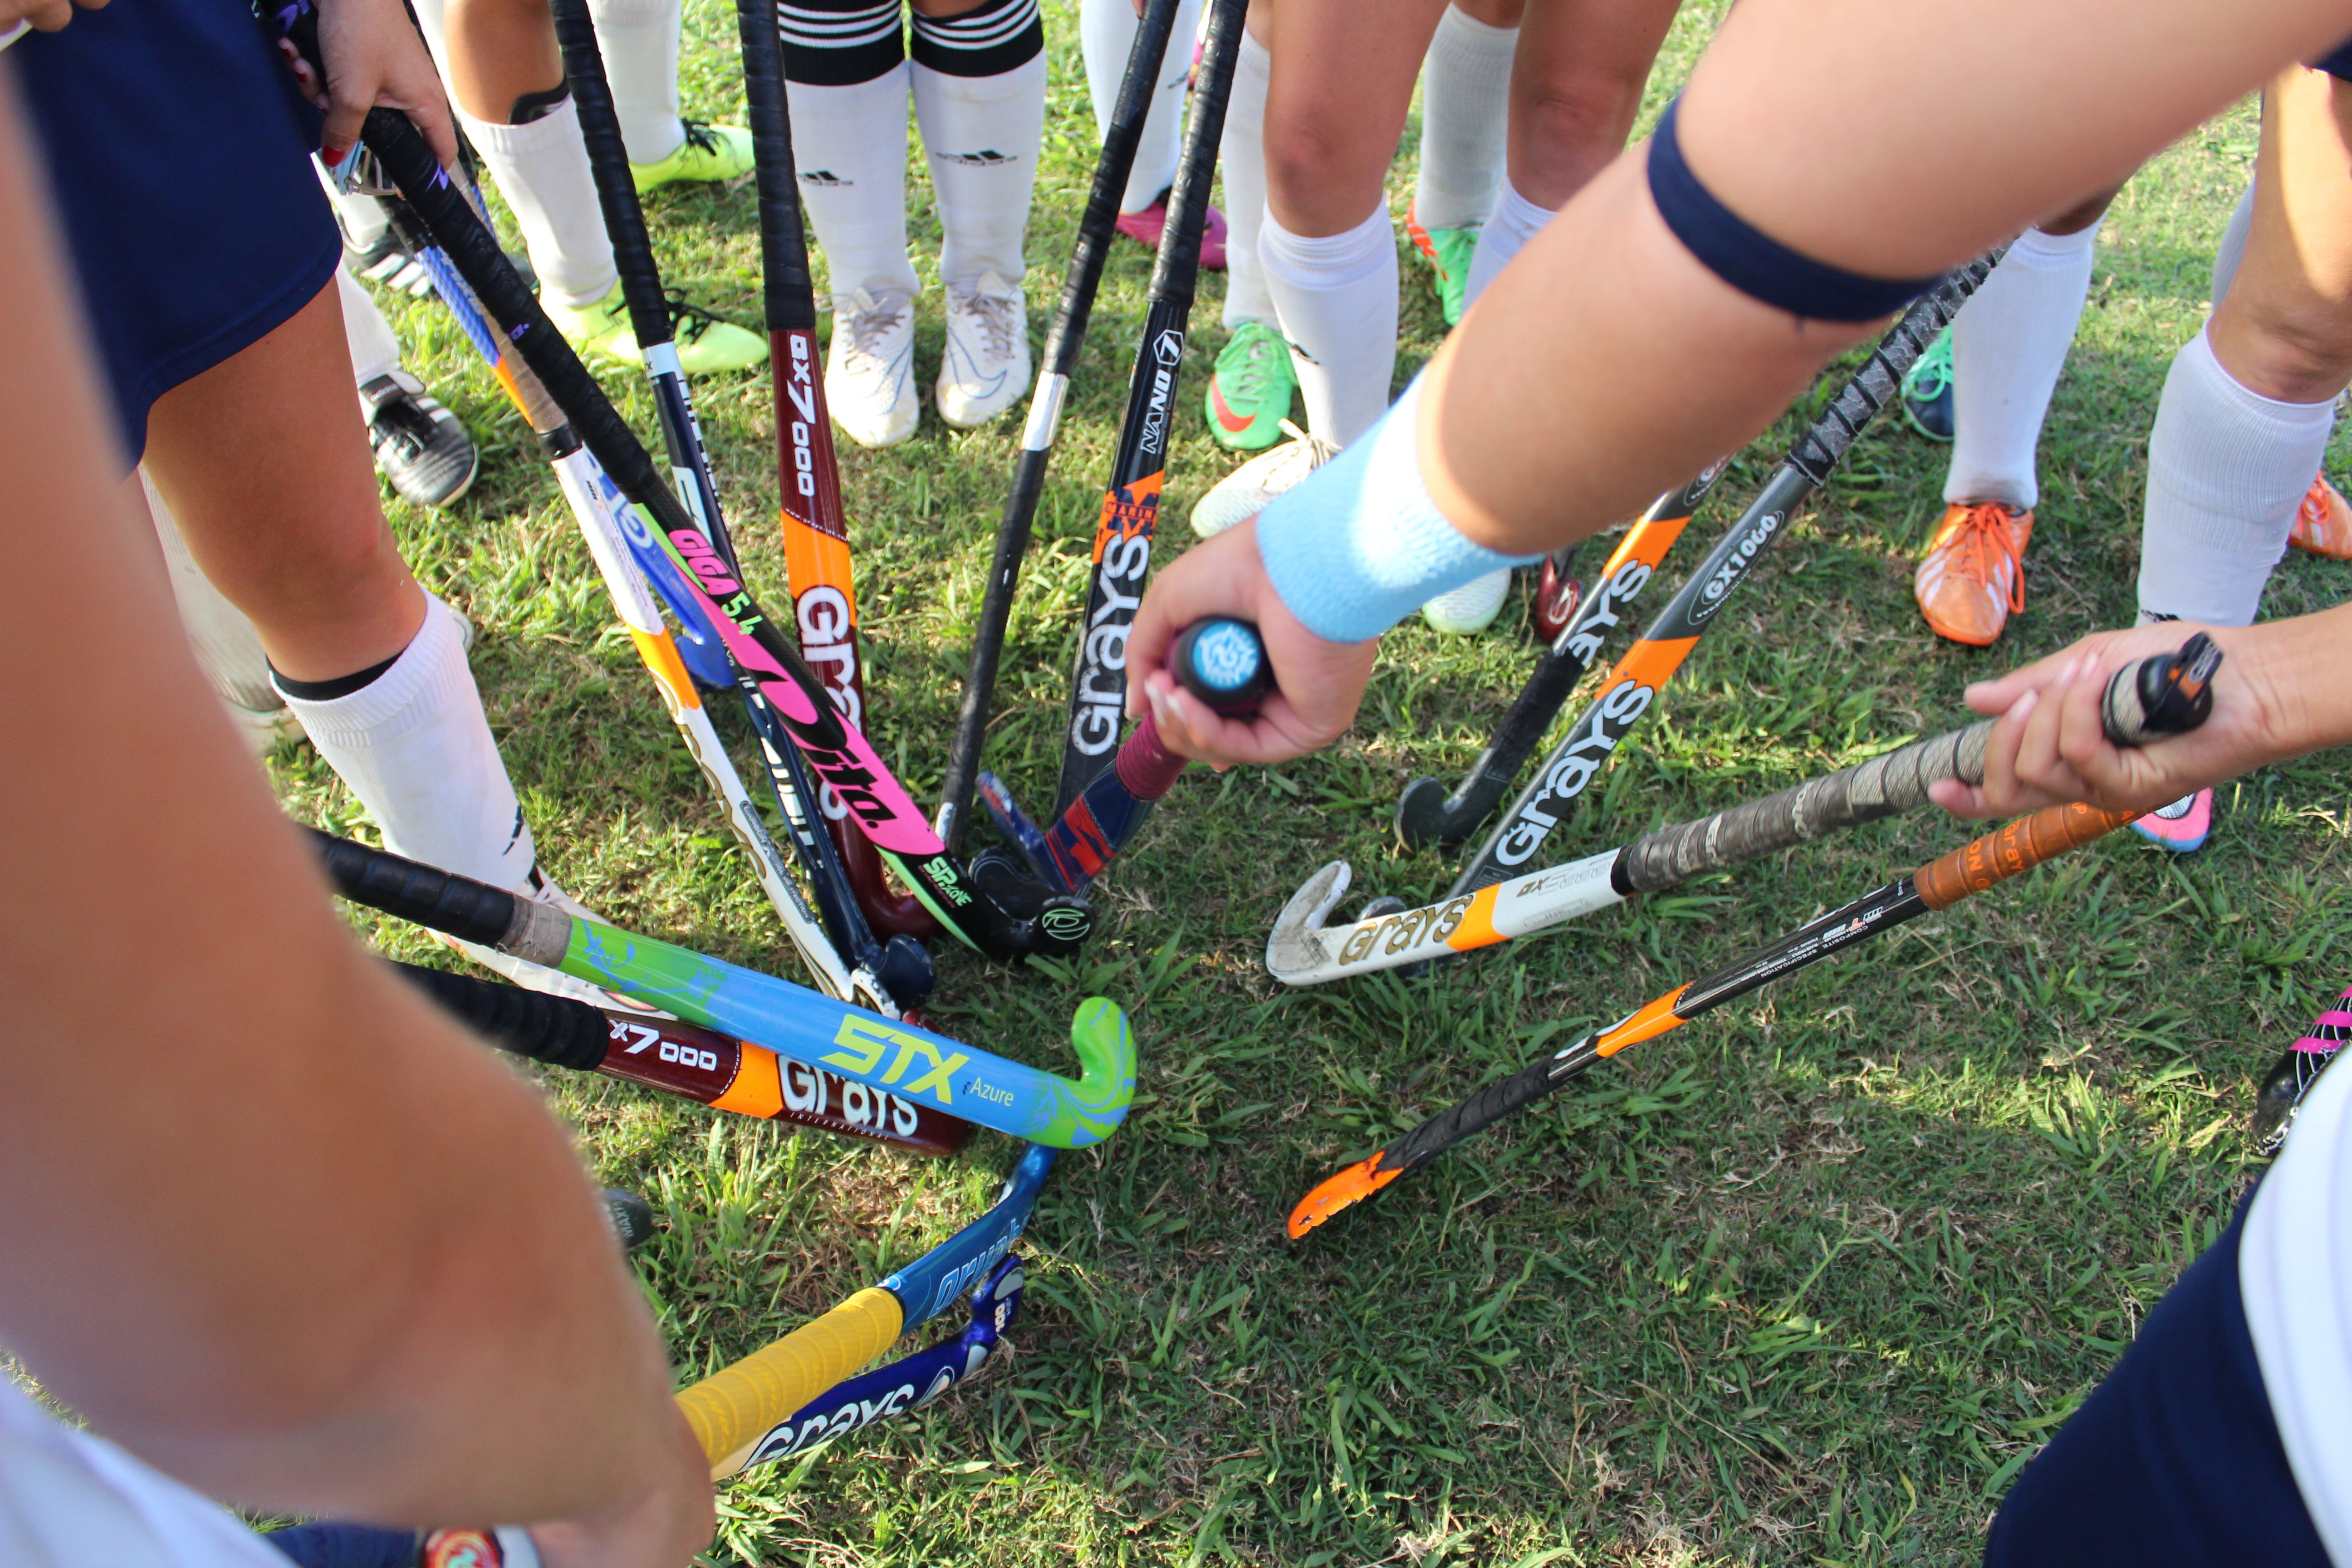 Girls field hockey sticks in a circle